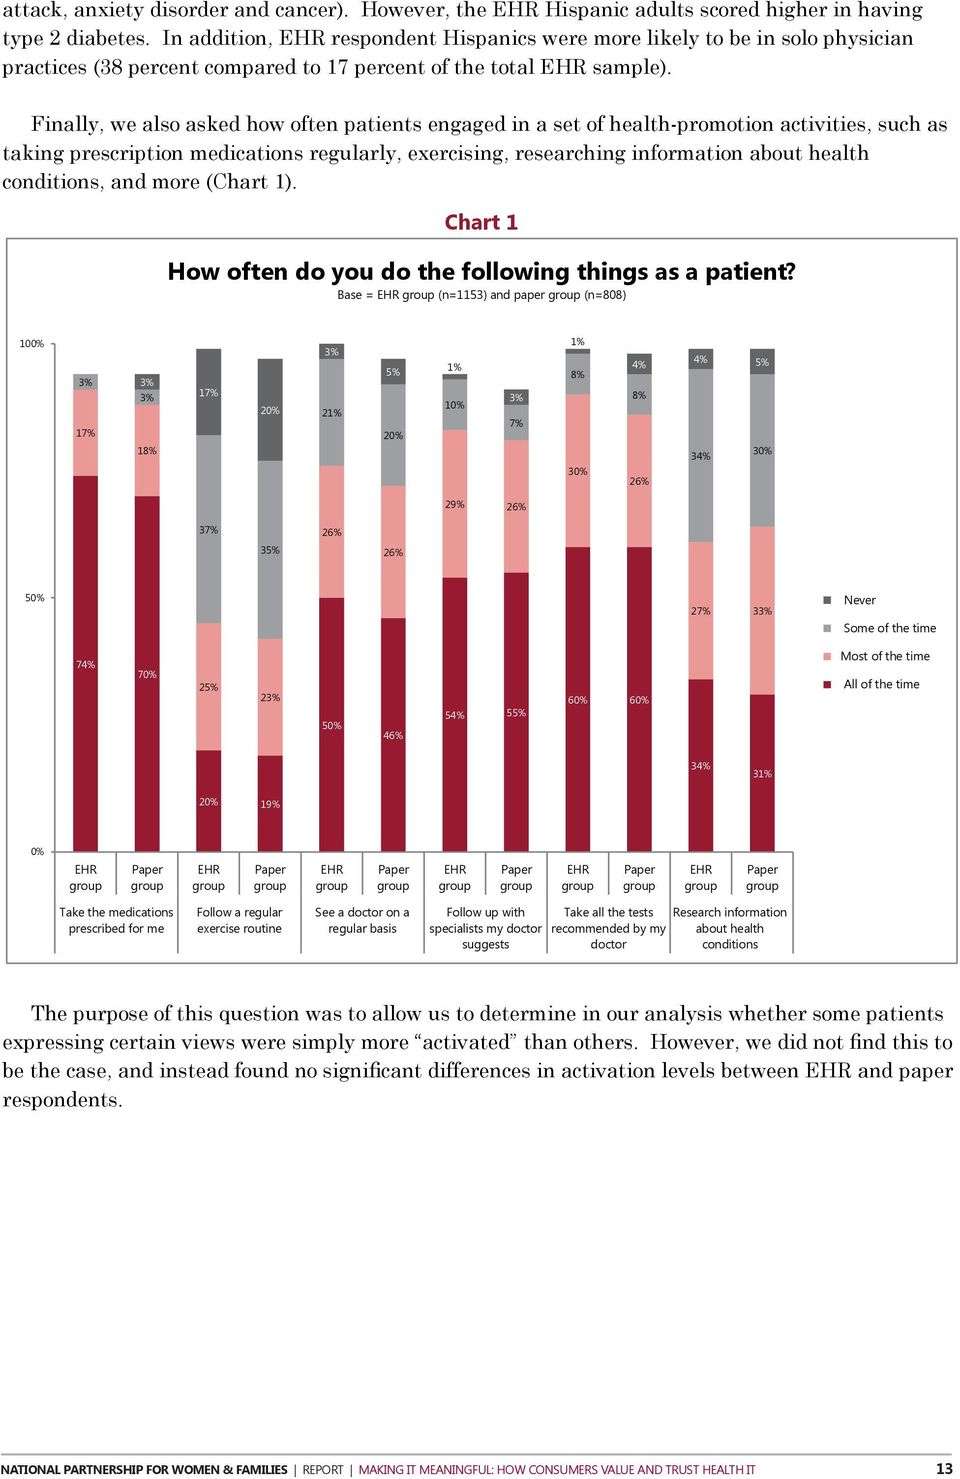 Finally, we also asked how often patients engaged in a set of health-promotion activities, such as taking prescription medications regularly, exercising, researching information about health